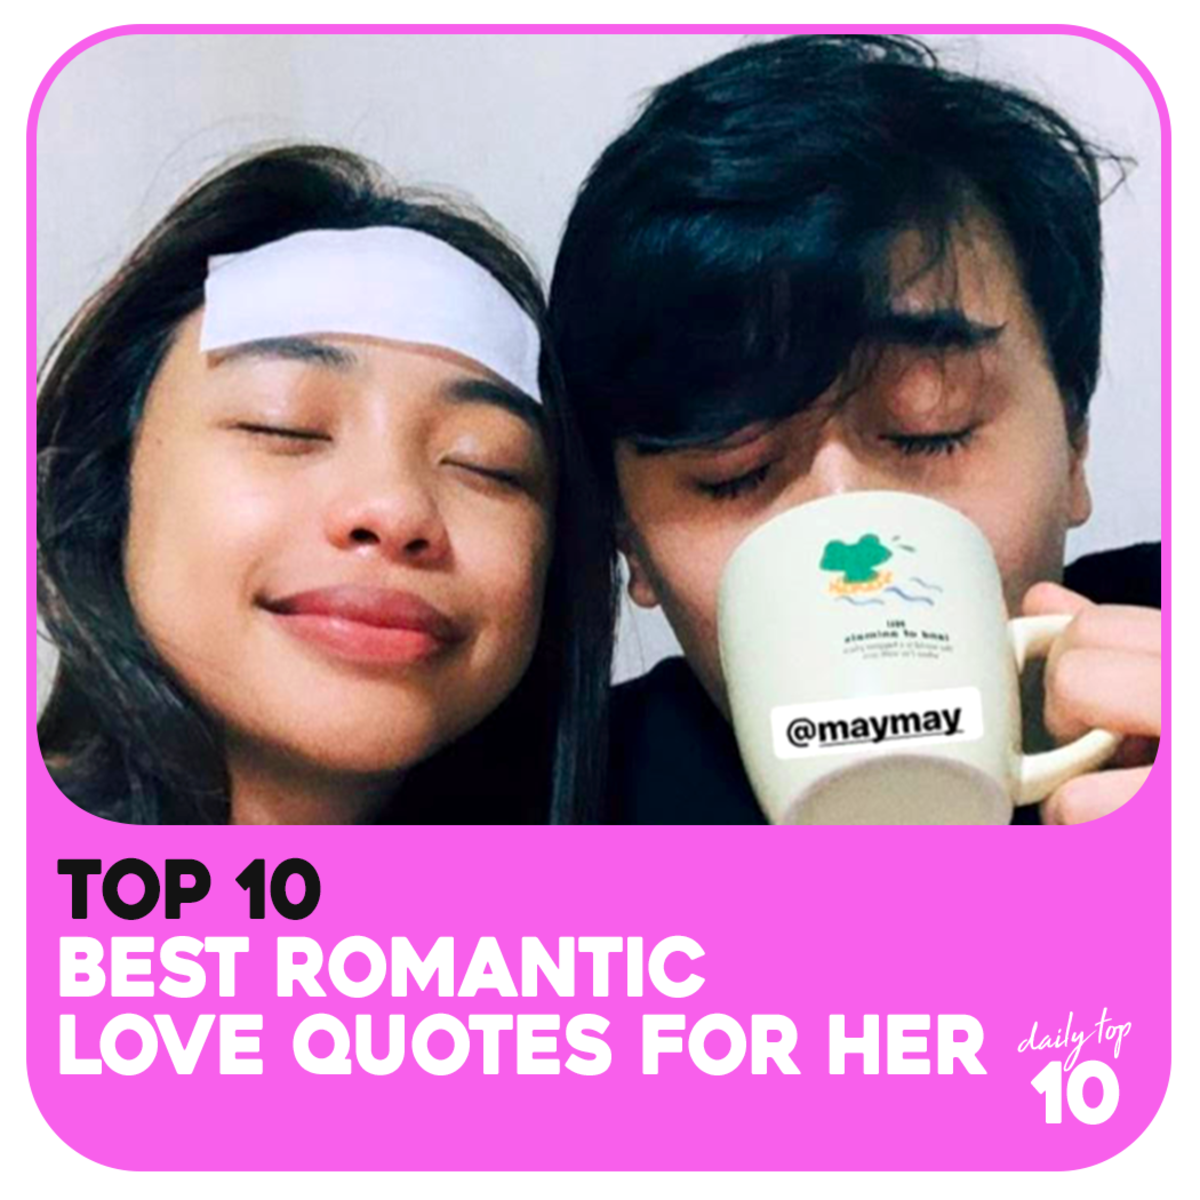 Top 10 Best Romantic Love Quotes For Her Featuring Mayward Maymay Entrata Edward Barber Photos Hubpages